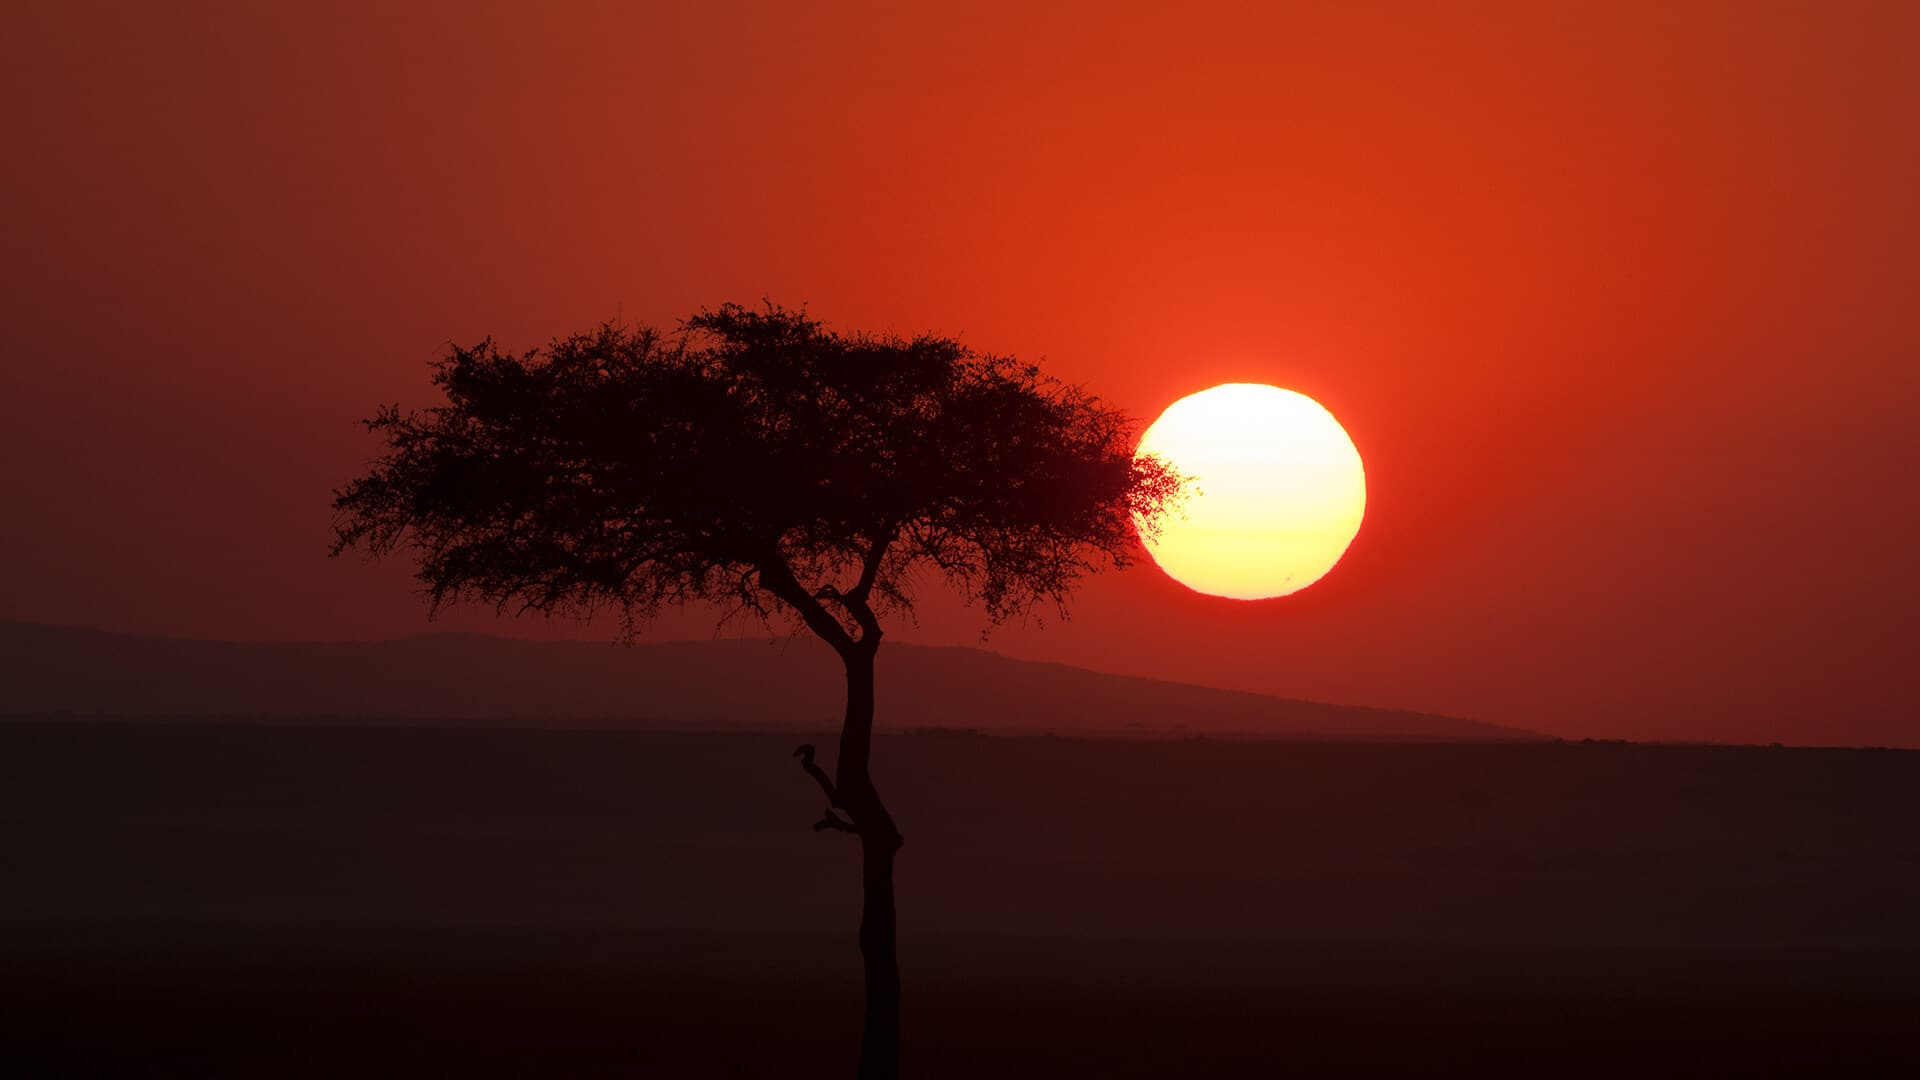 Sun setting across wild landscape draped in red and orange with a tree in the foreground